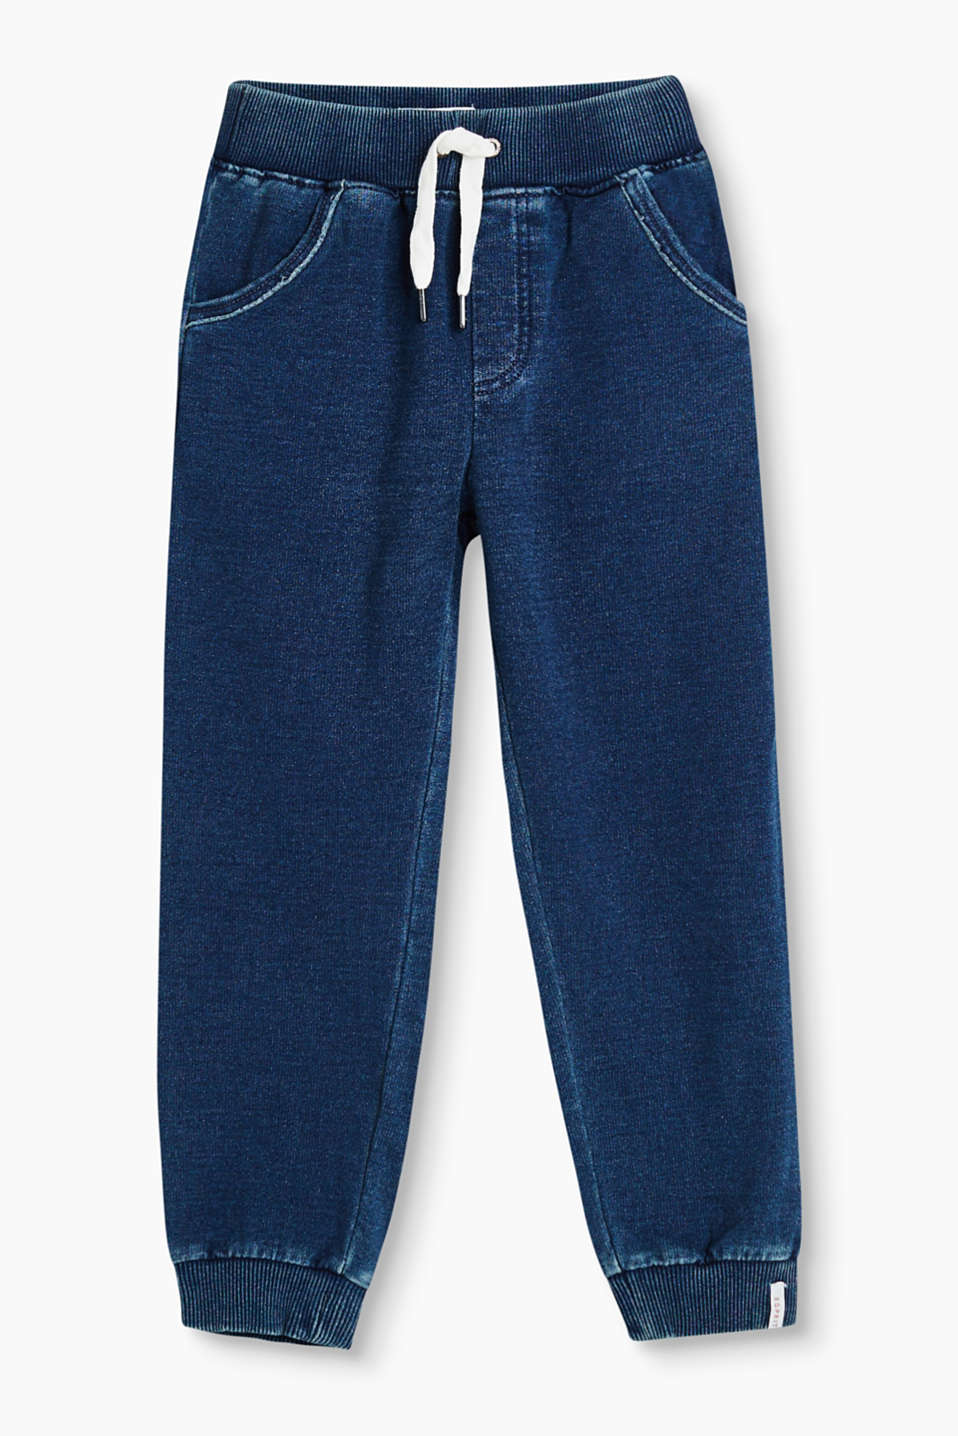 Denim-effect sweatshirt tracksuit bottoms with ribbed borders and a washed finish